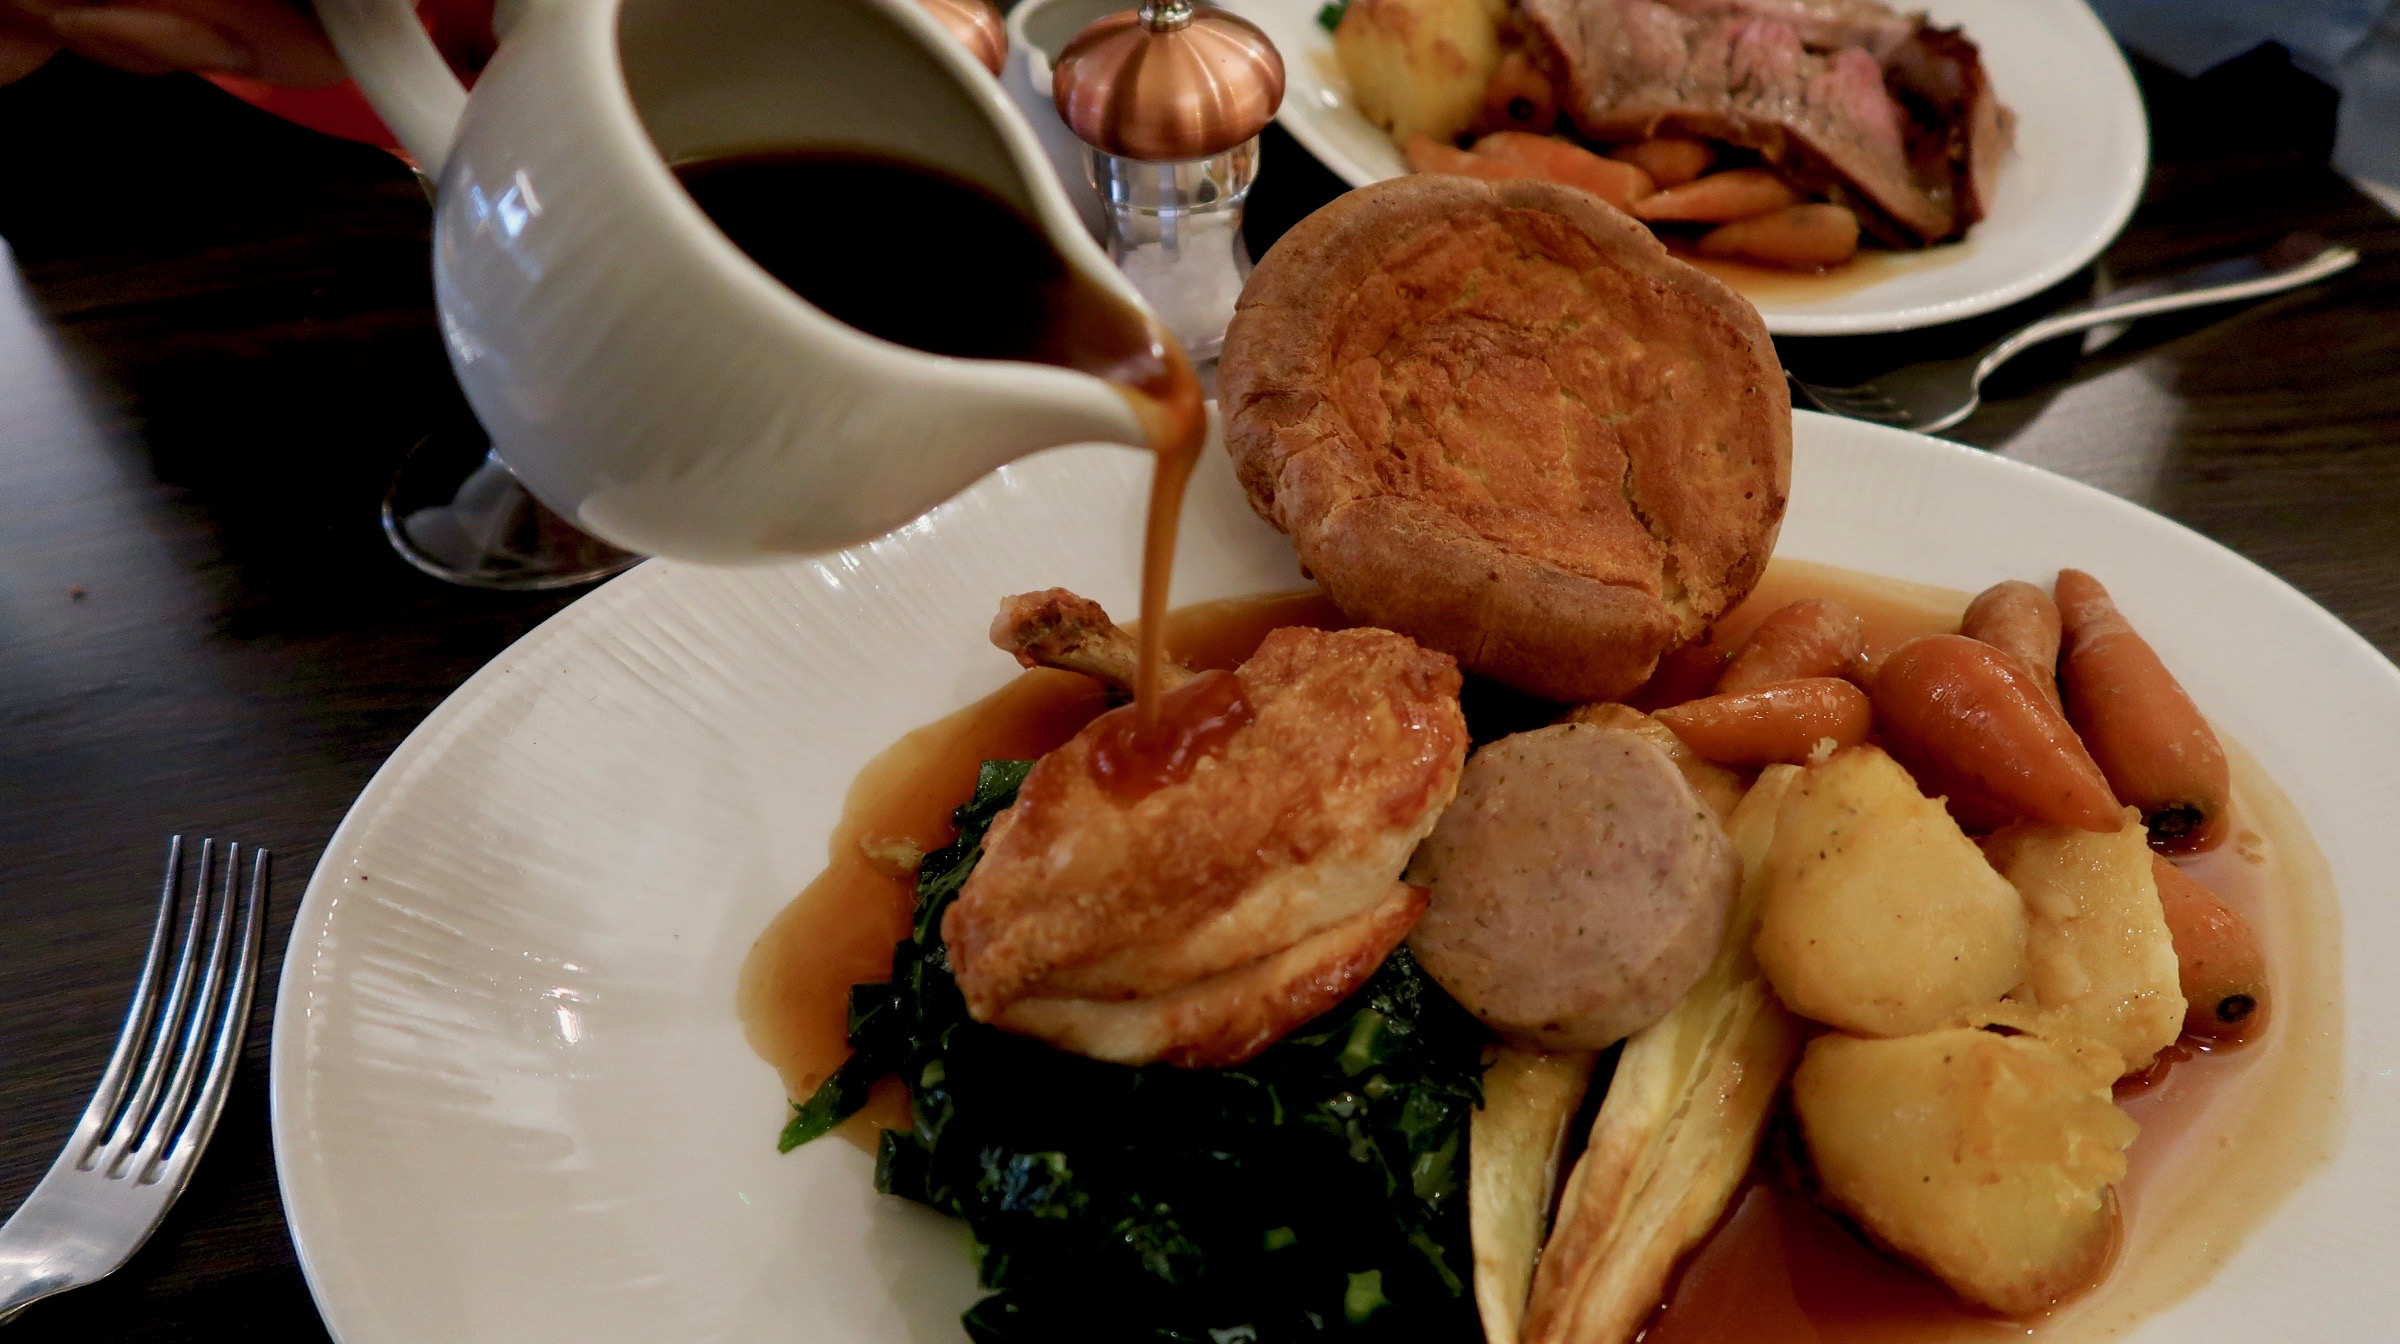 Chicken Sunday Dinner | Eating in Newcastle | The Hudson at The County | Food & Drink Review | Elle Blonde Luxury Lifestyle Destination Blog